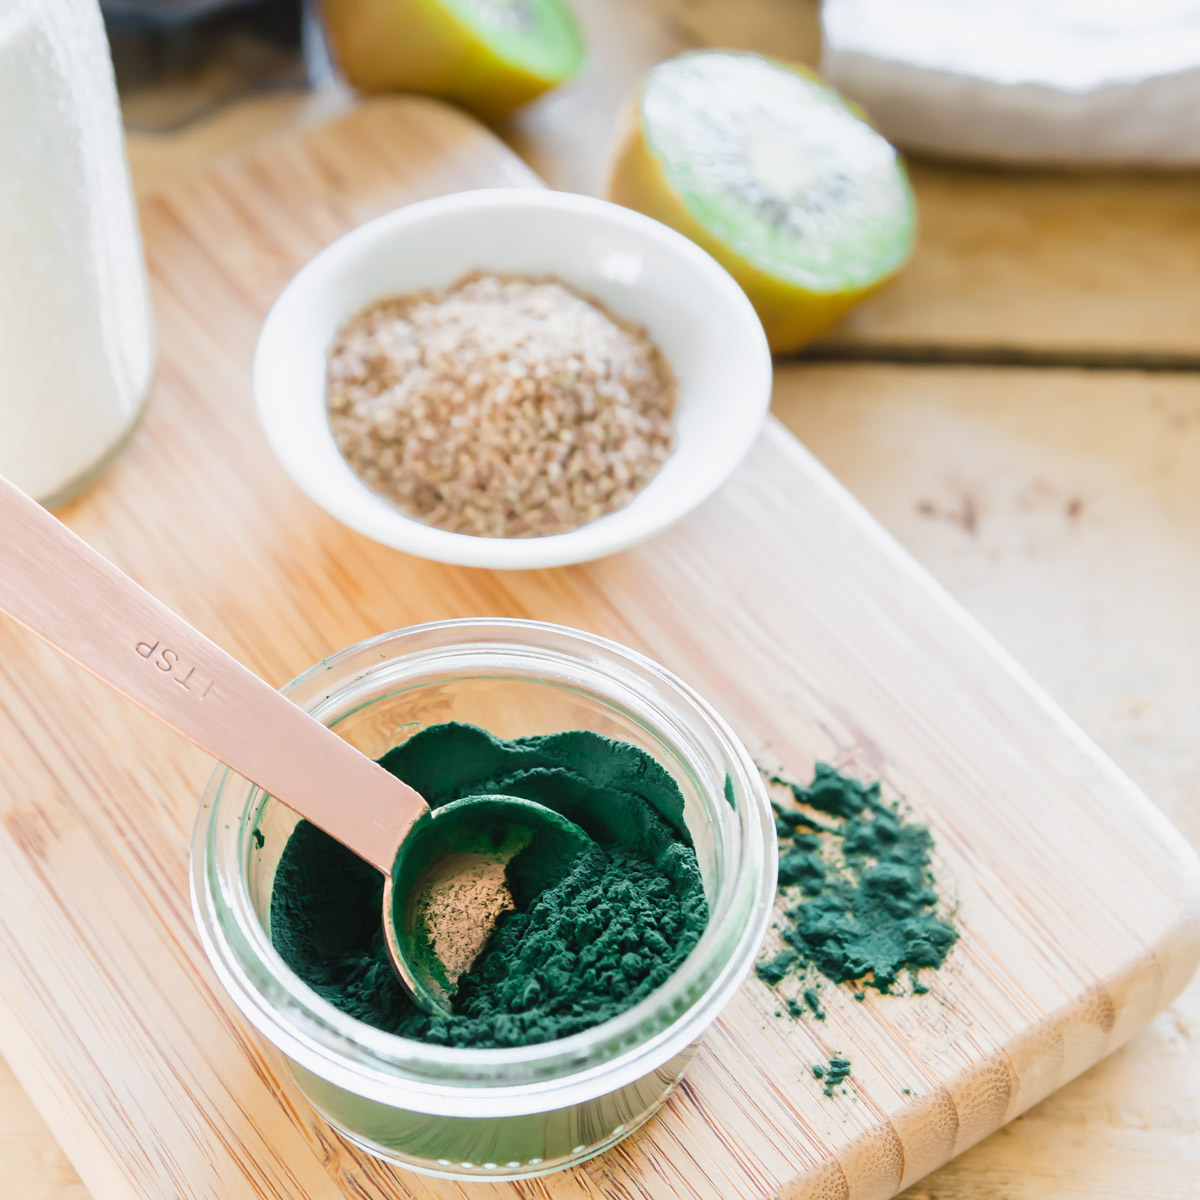 blue-green spirulina powder to make a spirulina smoothie